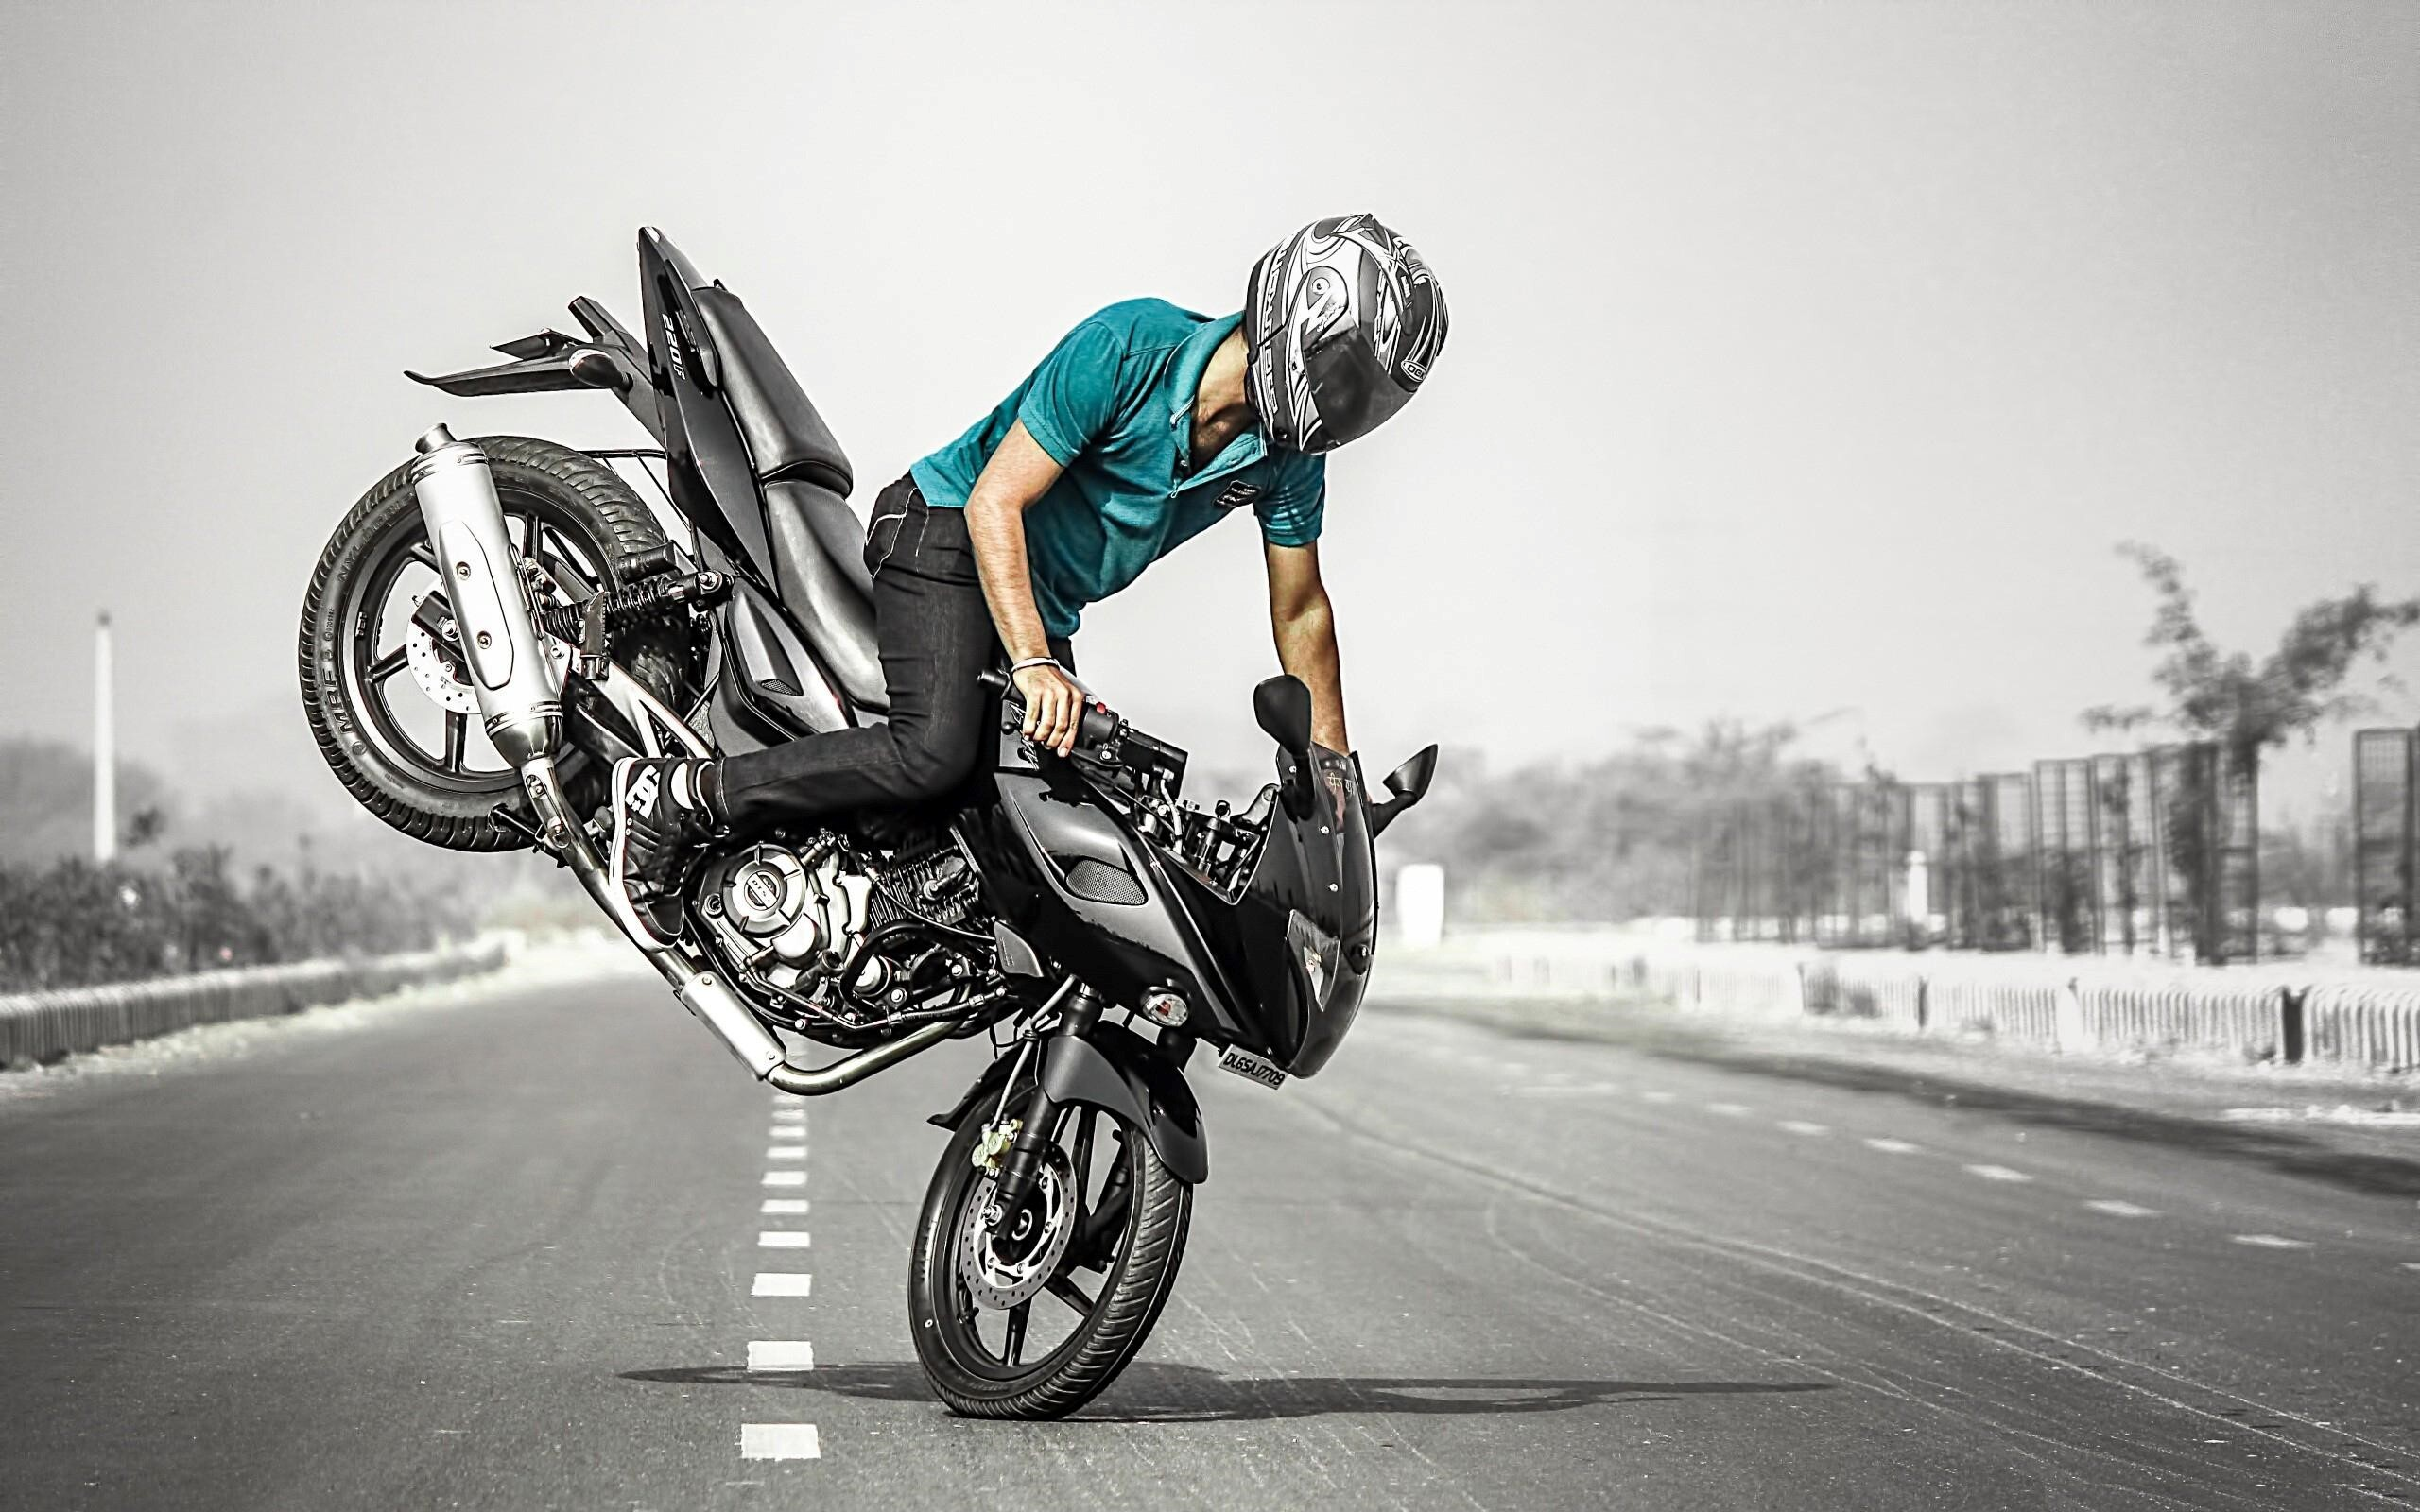 amazing bike stunt images | hd wallpapers